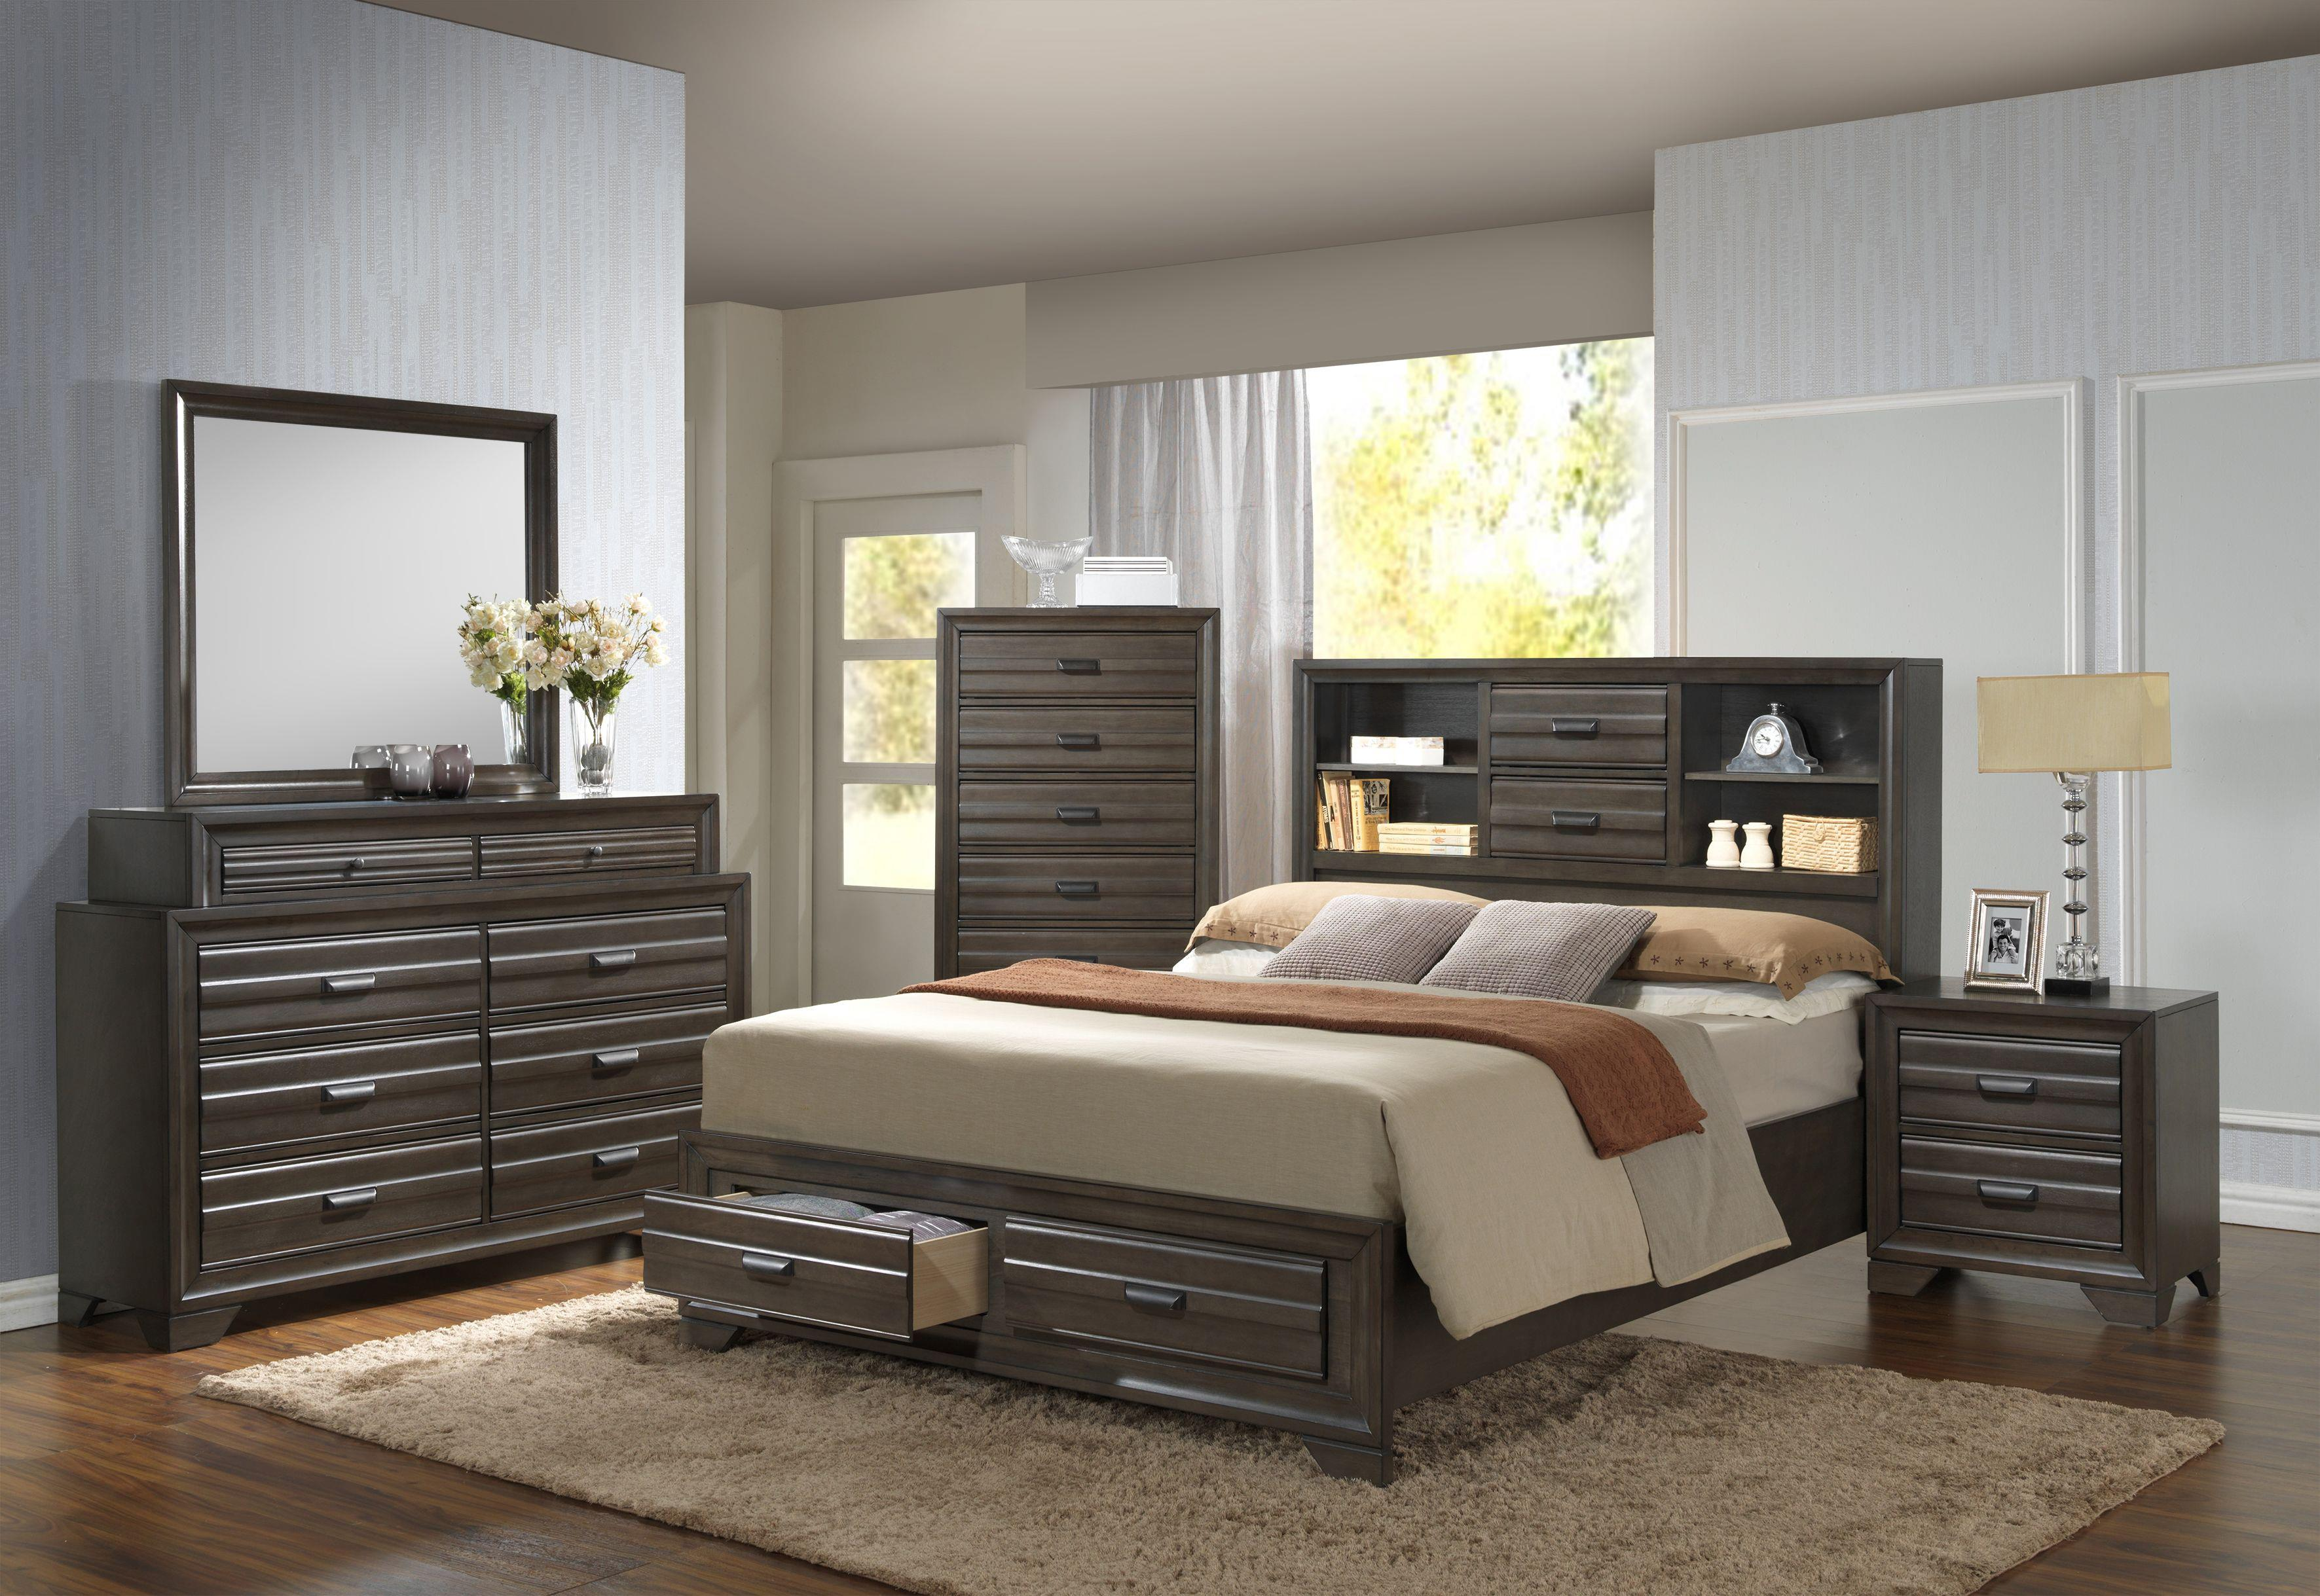 5236A Queen Bedroom Group by Lifestyle at Beck's Furniture